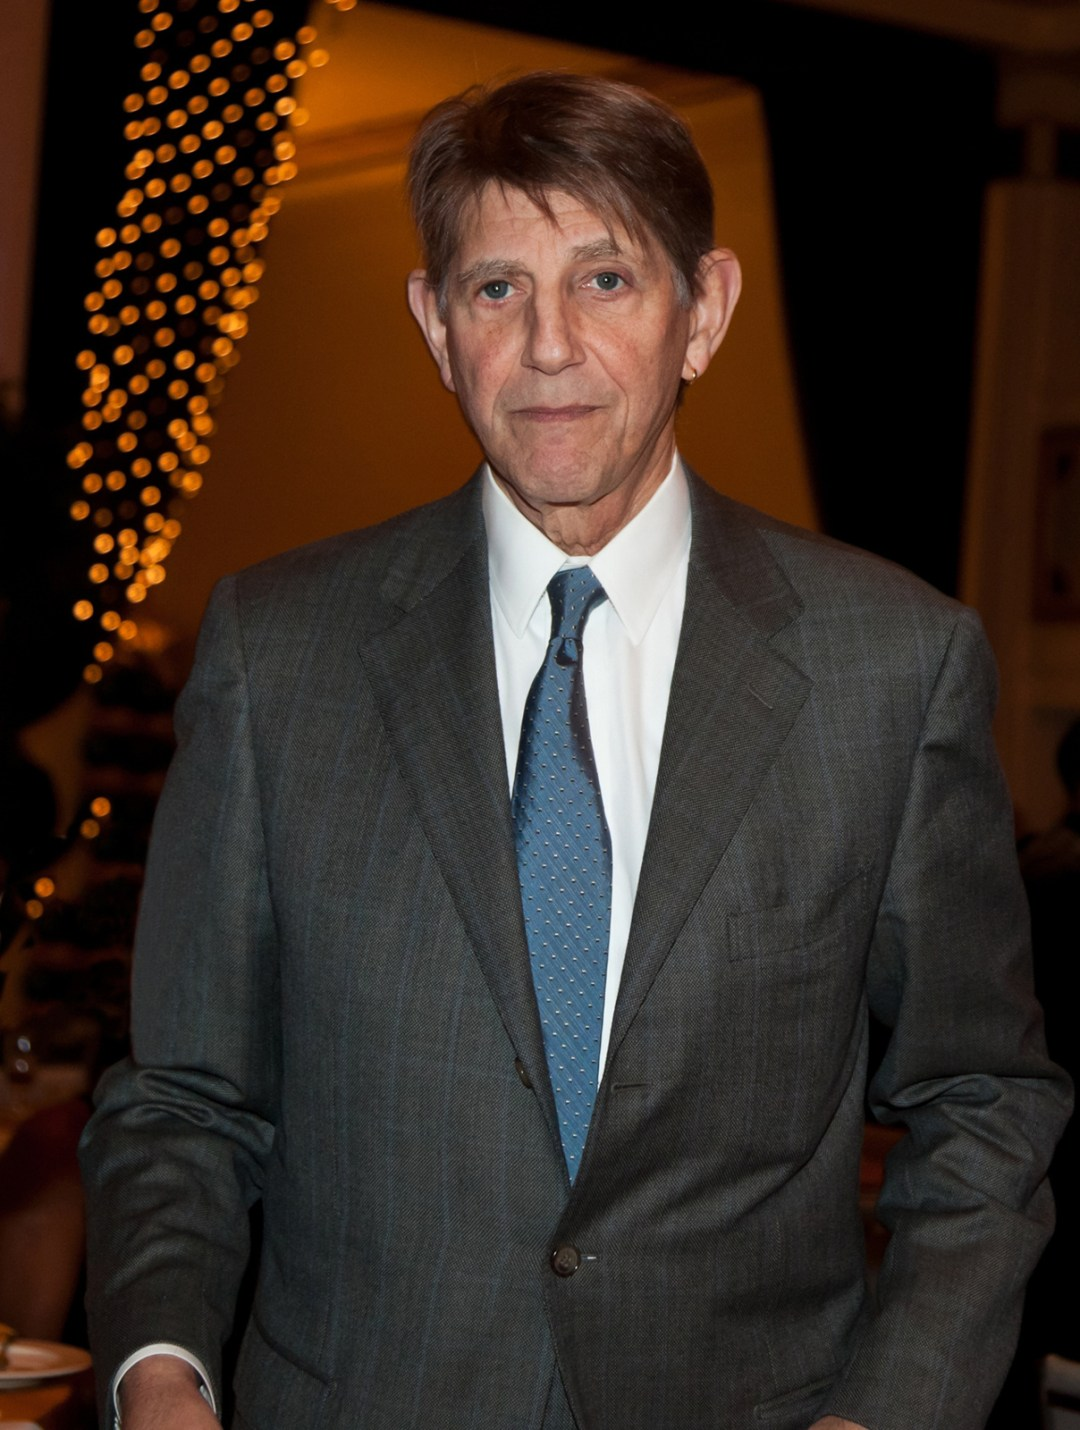 Candid shot of Peter Coyote